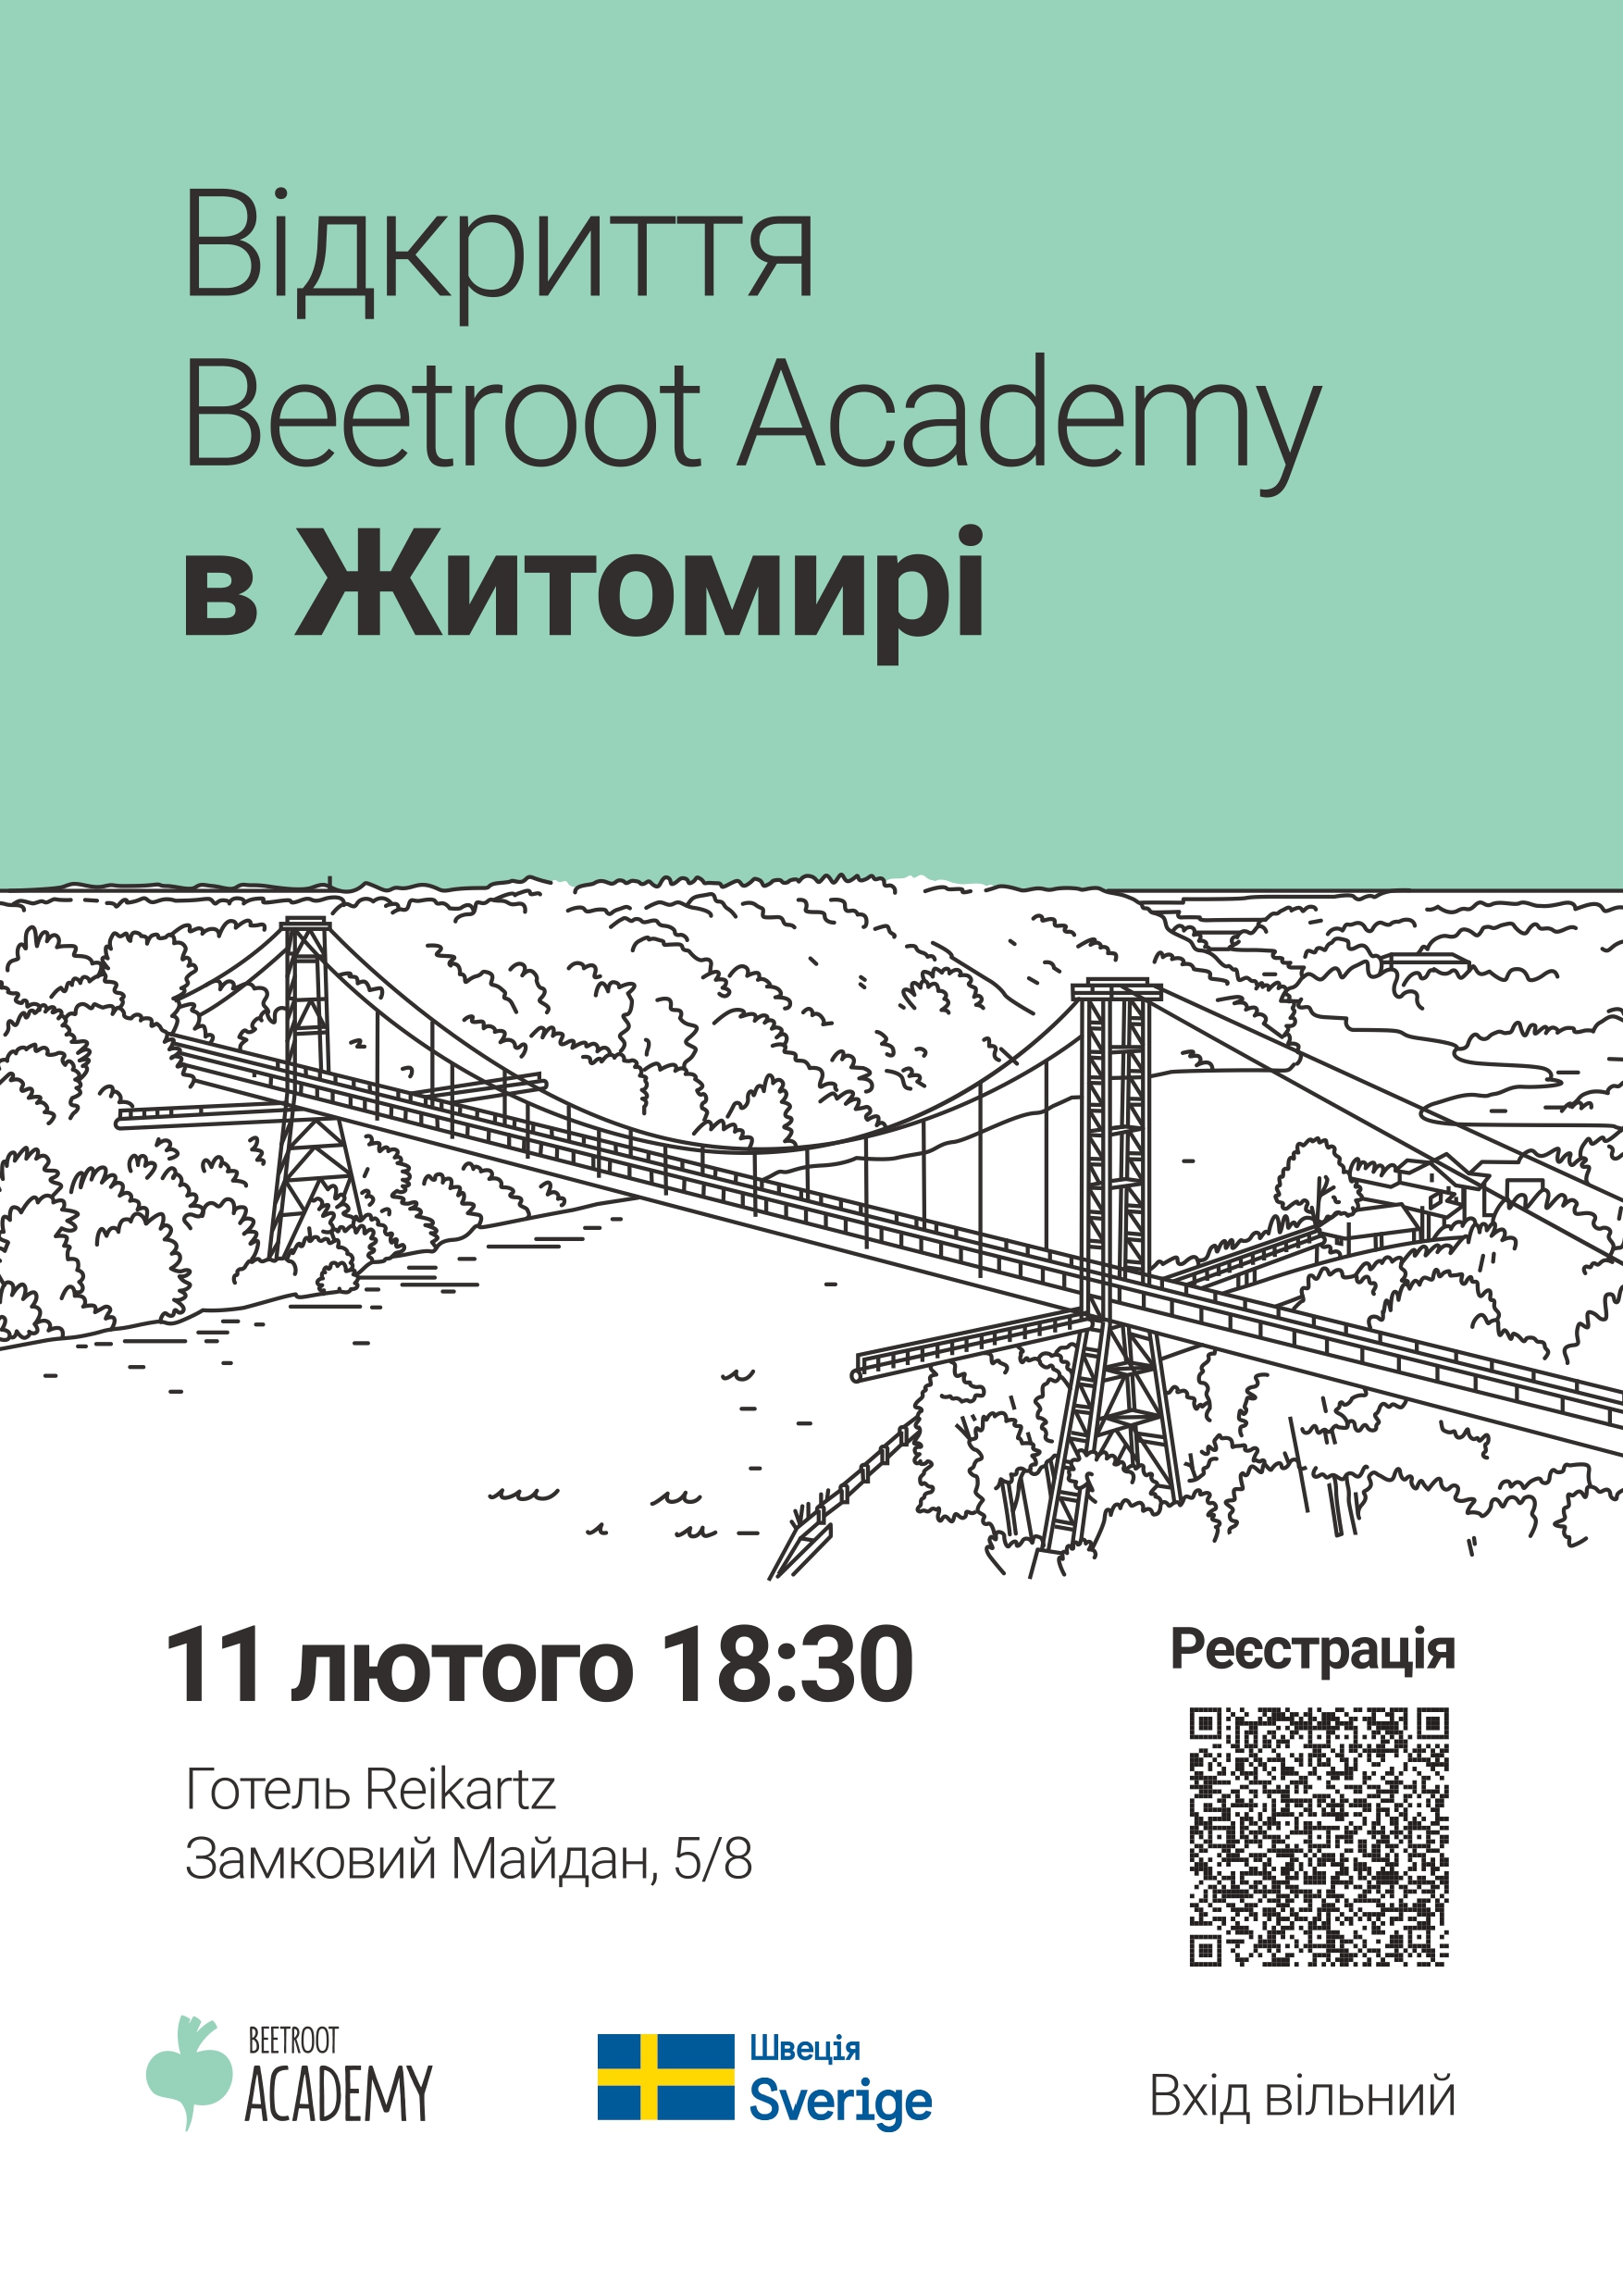 Opening of Beetroot Academy in Zhytomyr